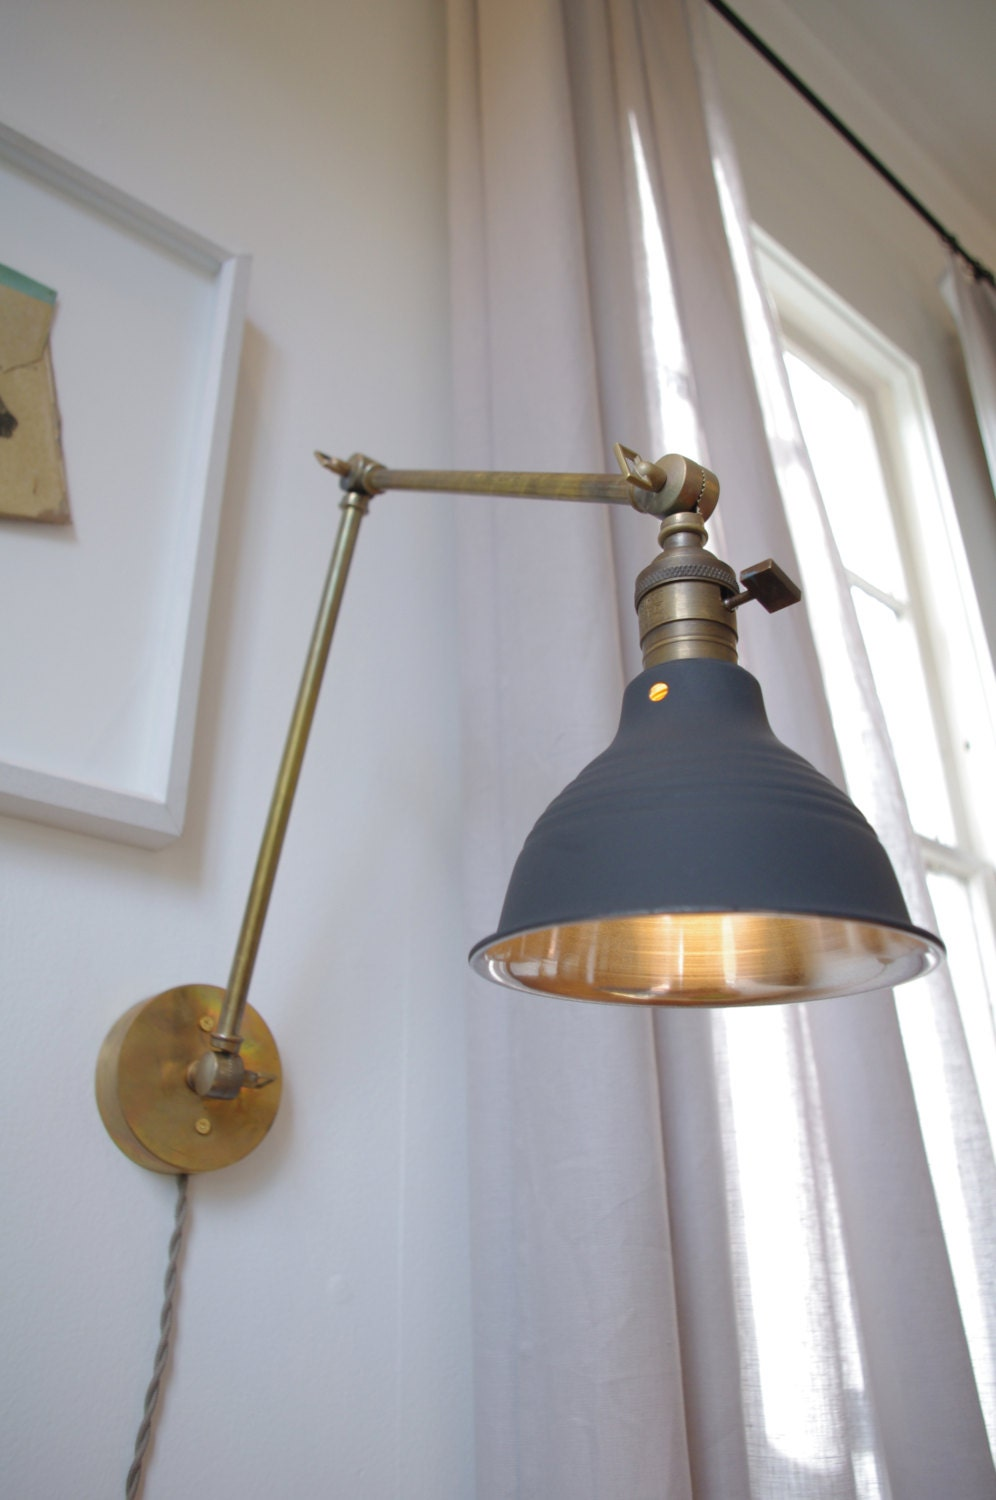 Etsy Wall Lamps : Articulating Industrial Wall Lamp O.C. White Style by LongMadeCo